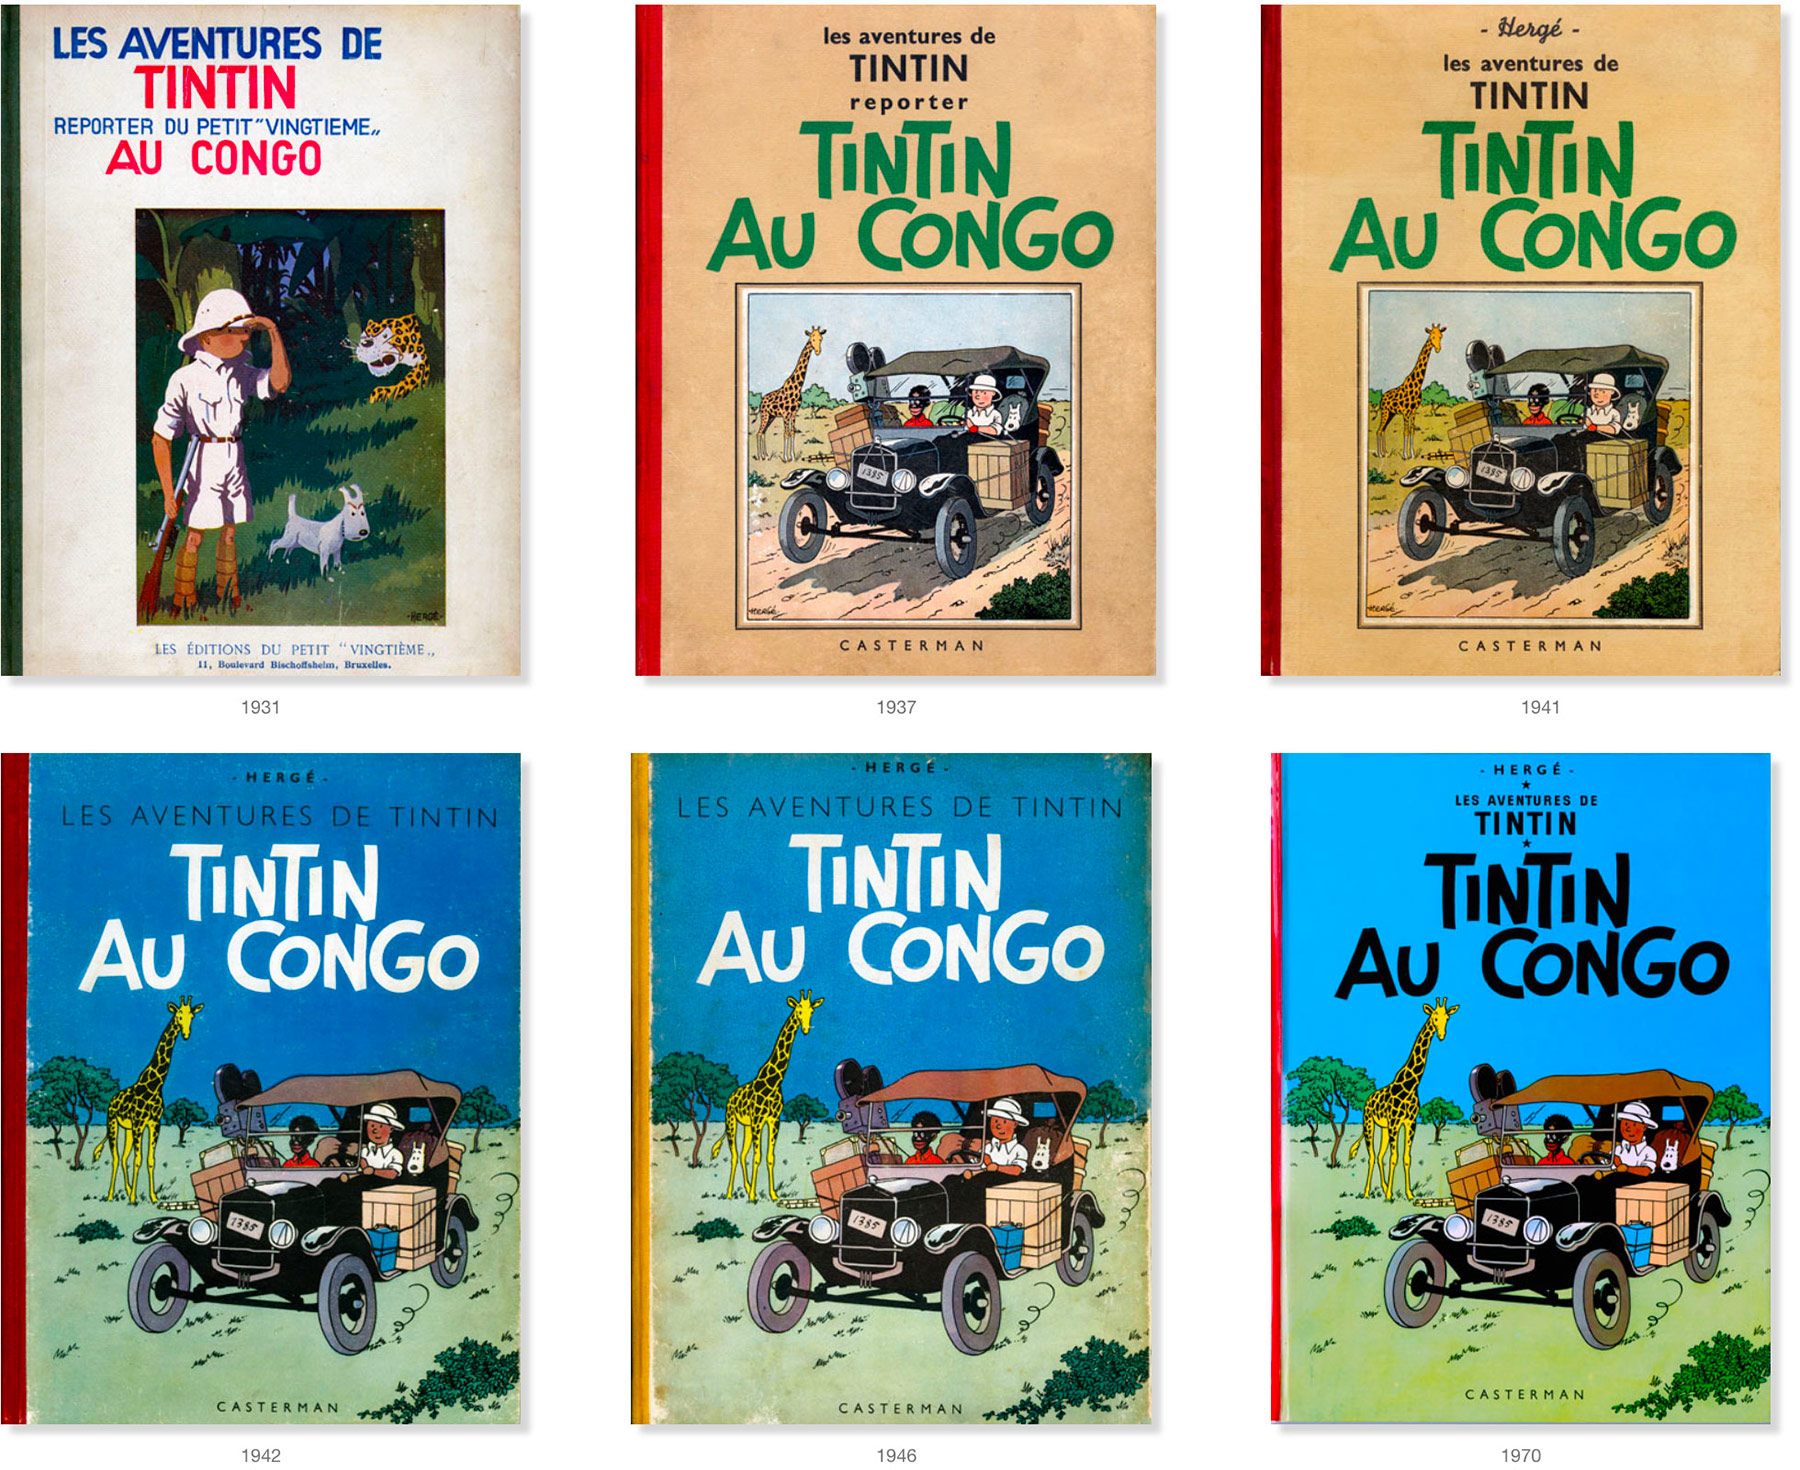 Tintin in the Congo - covers